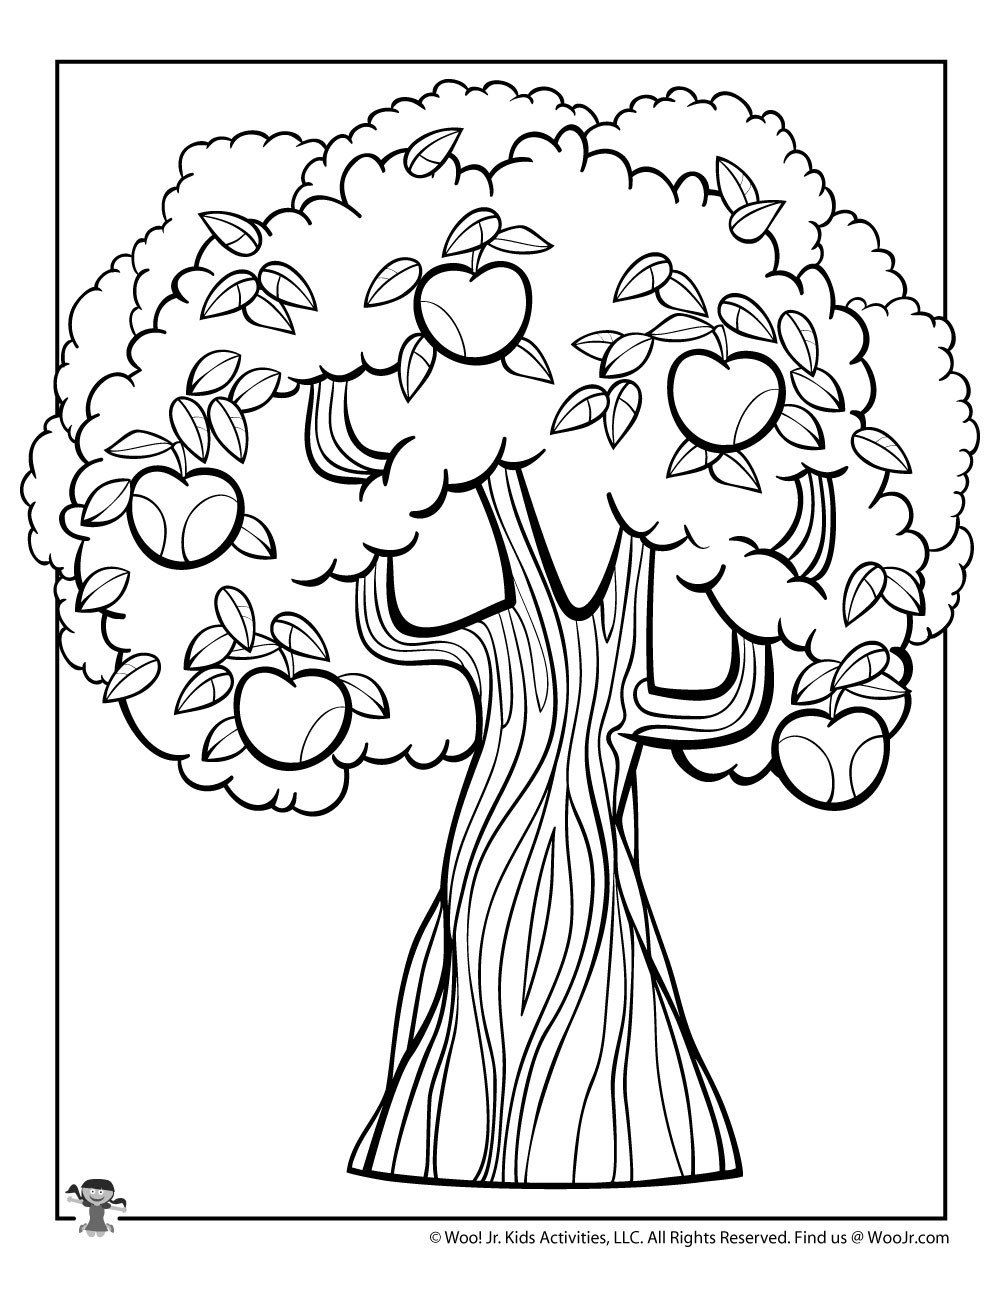 Tree Coloring Pages For Kids Apple Tree Coloring Page In 2020 Apple Coloring Pages Tree Coloring Page Coloring Pages